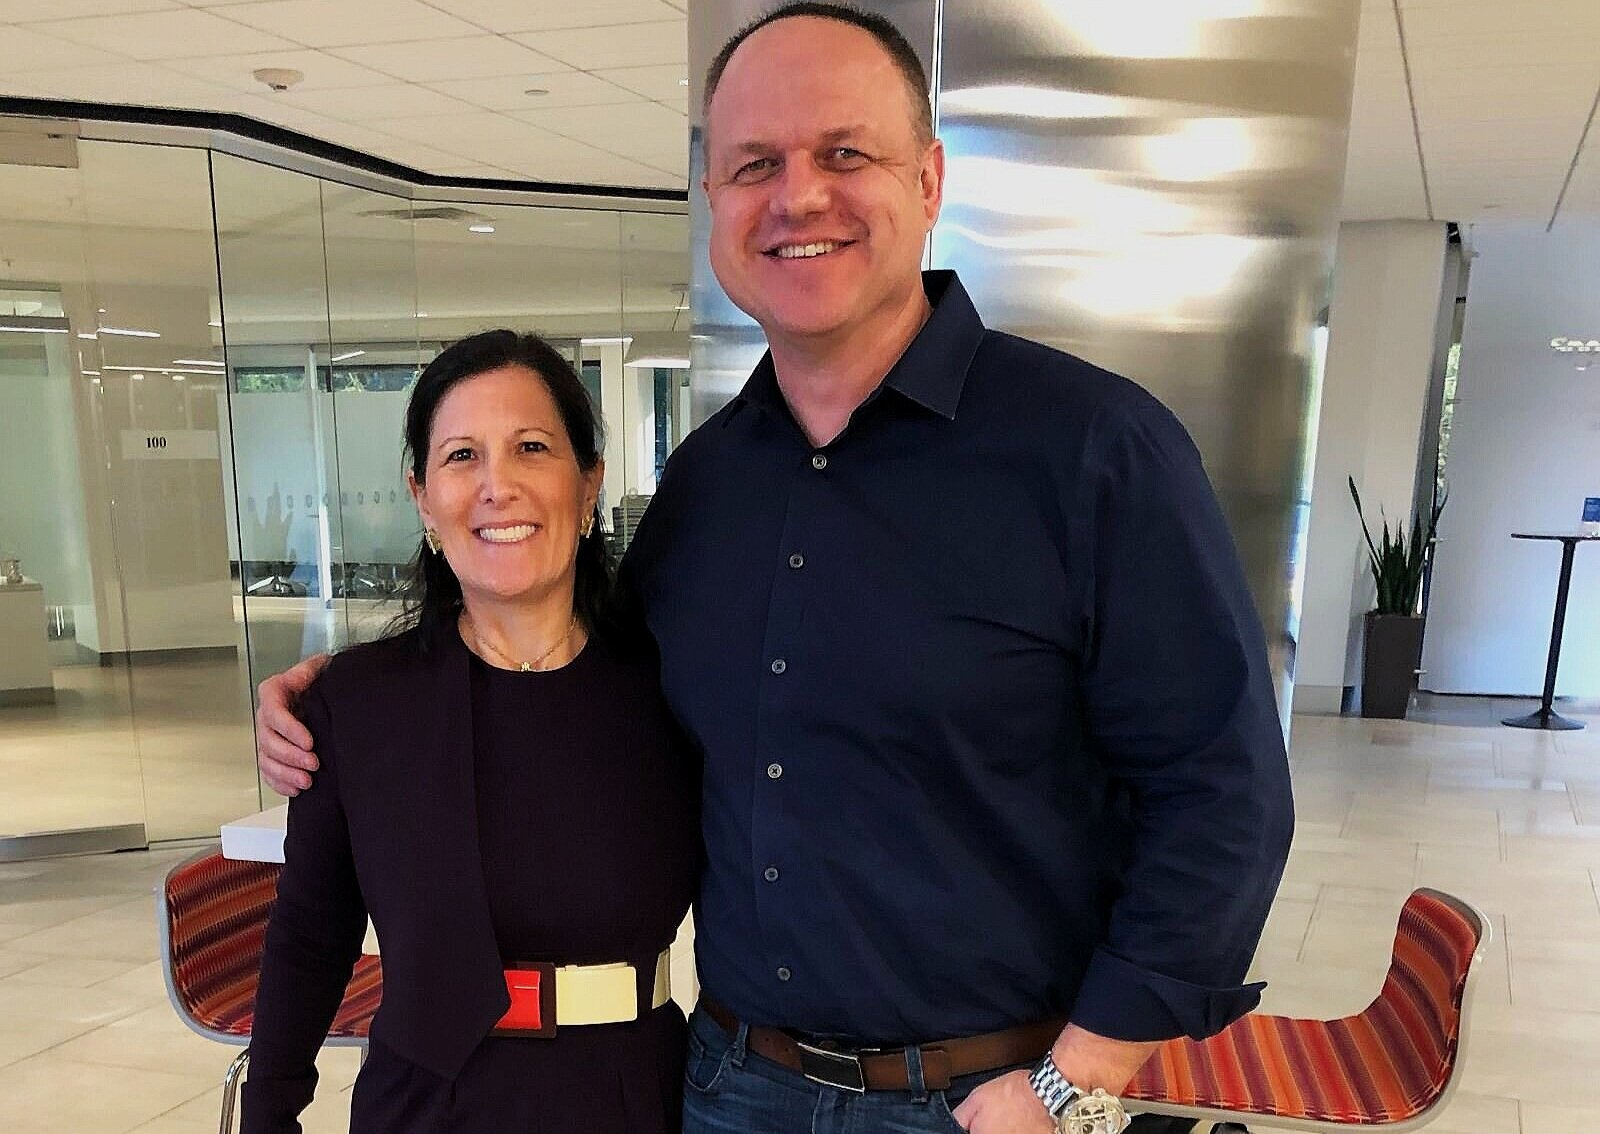 The latest adventure as Shmoop's new CEO - Ellen Siminoff (left) and Andy Rahden (right)